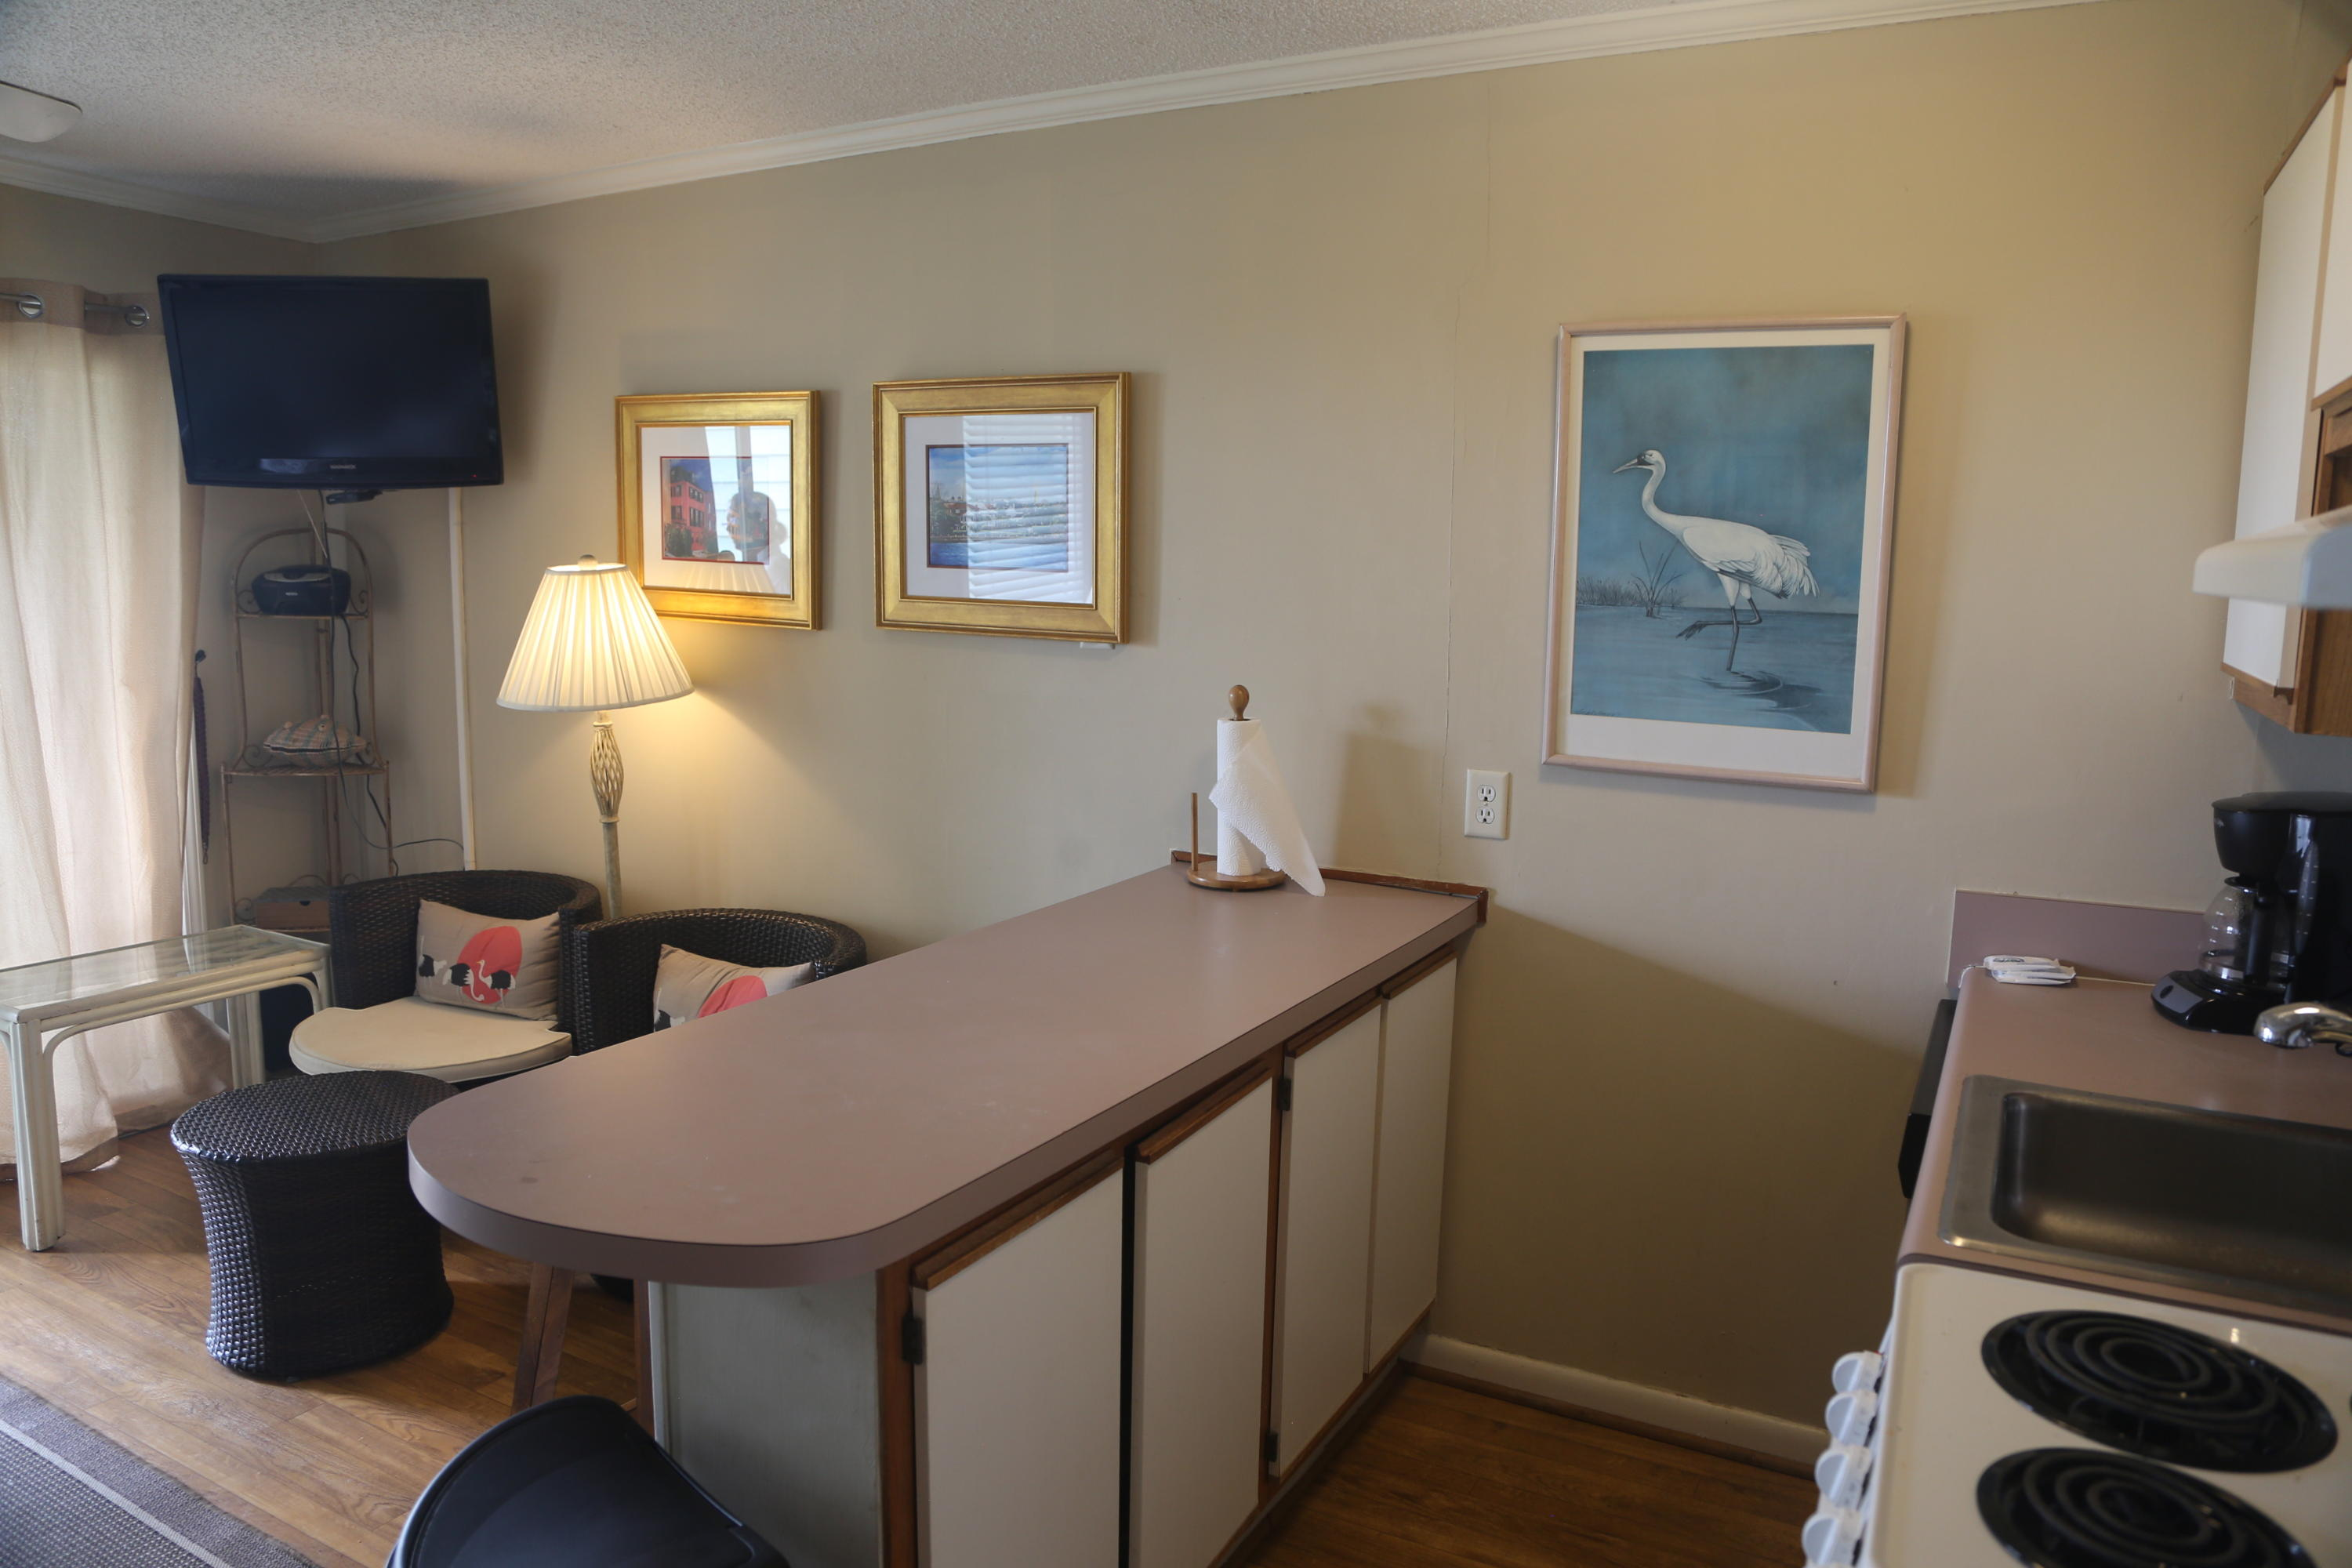 Sea Cabin On The Ocean Homes For Sale - 1300 Ocean, Isle of Palms, SC - 54